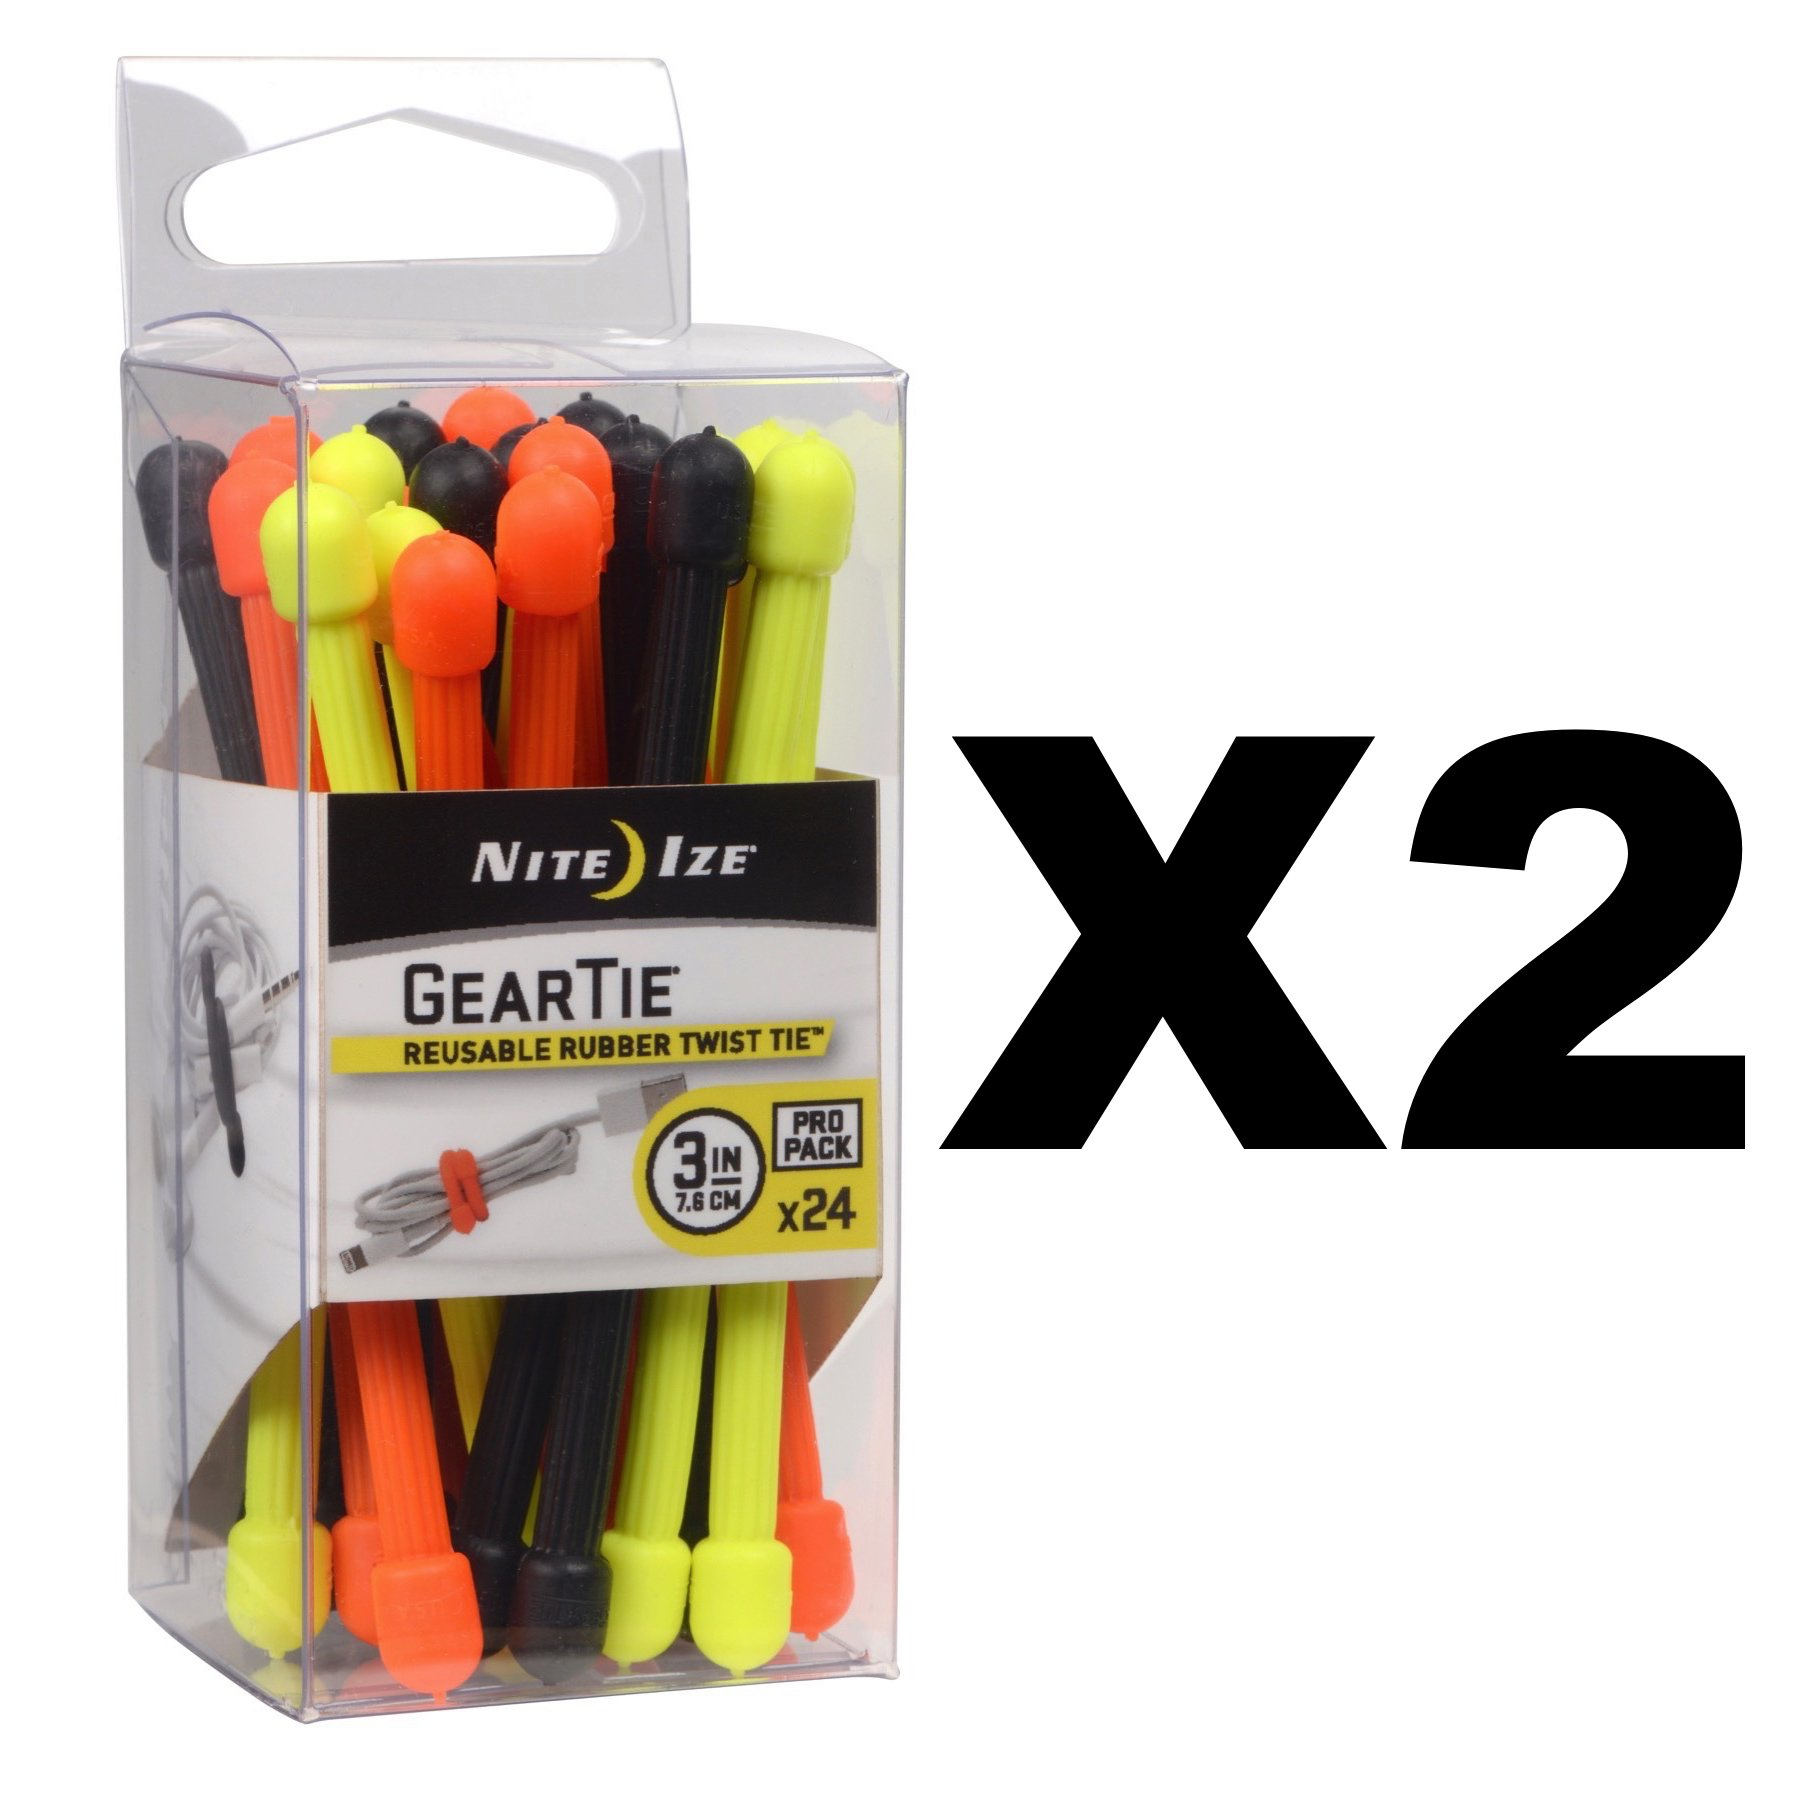 Nite Ize Gear Tie ProPack 3'' Multi-Colored Twisty Ties Durable (2-Pack of 24) by Nite Ize